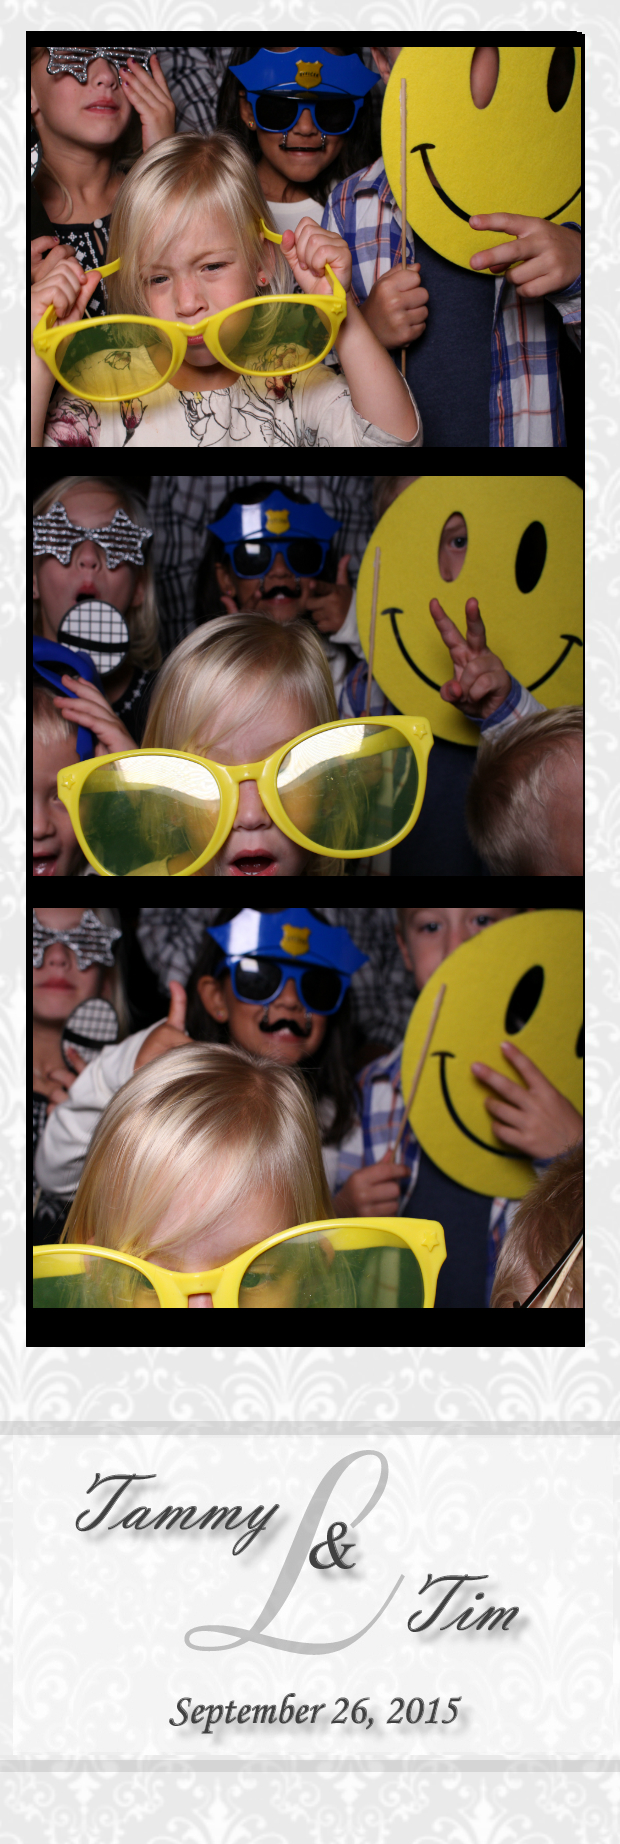 Guest House Events Photo Booth Strips T&T (18).jpg